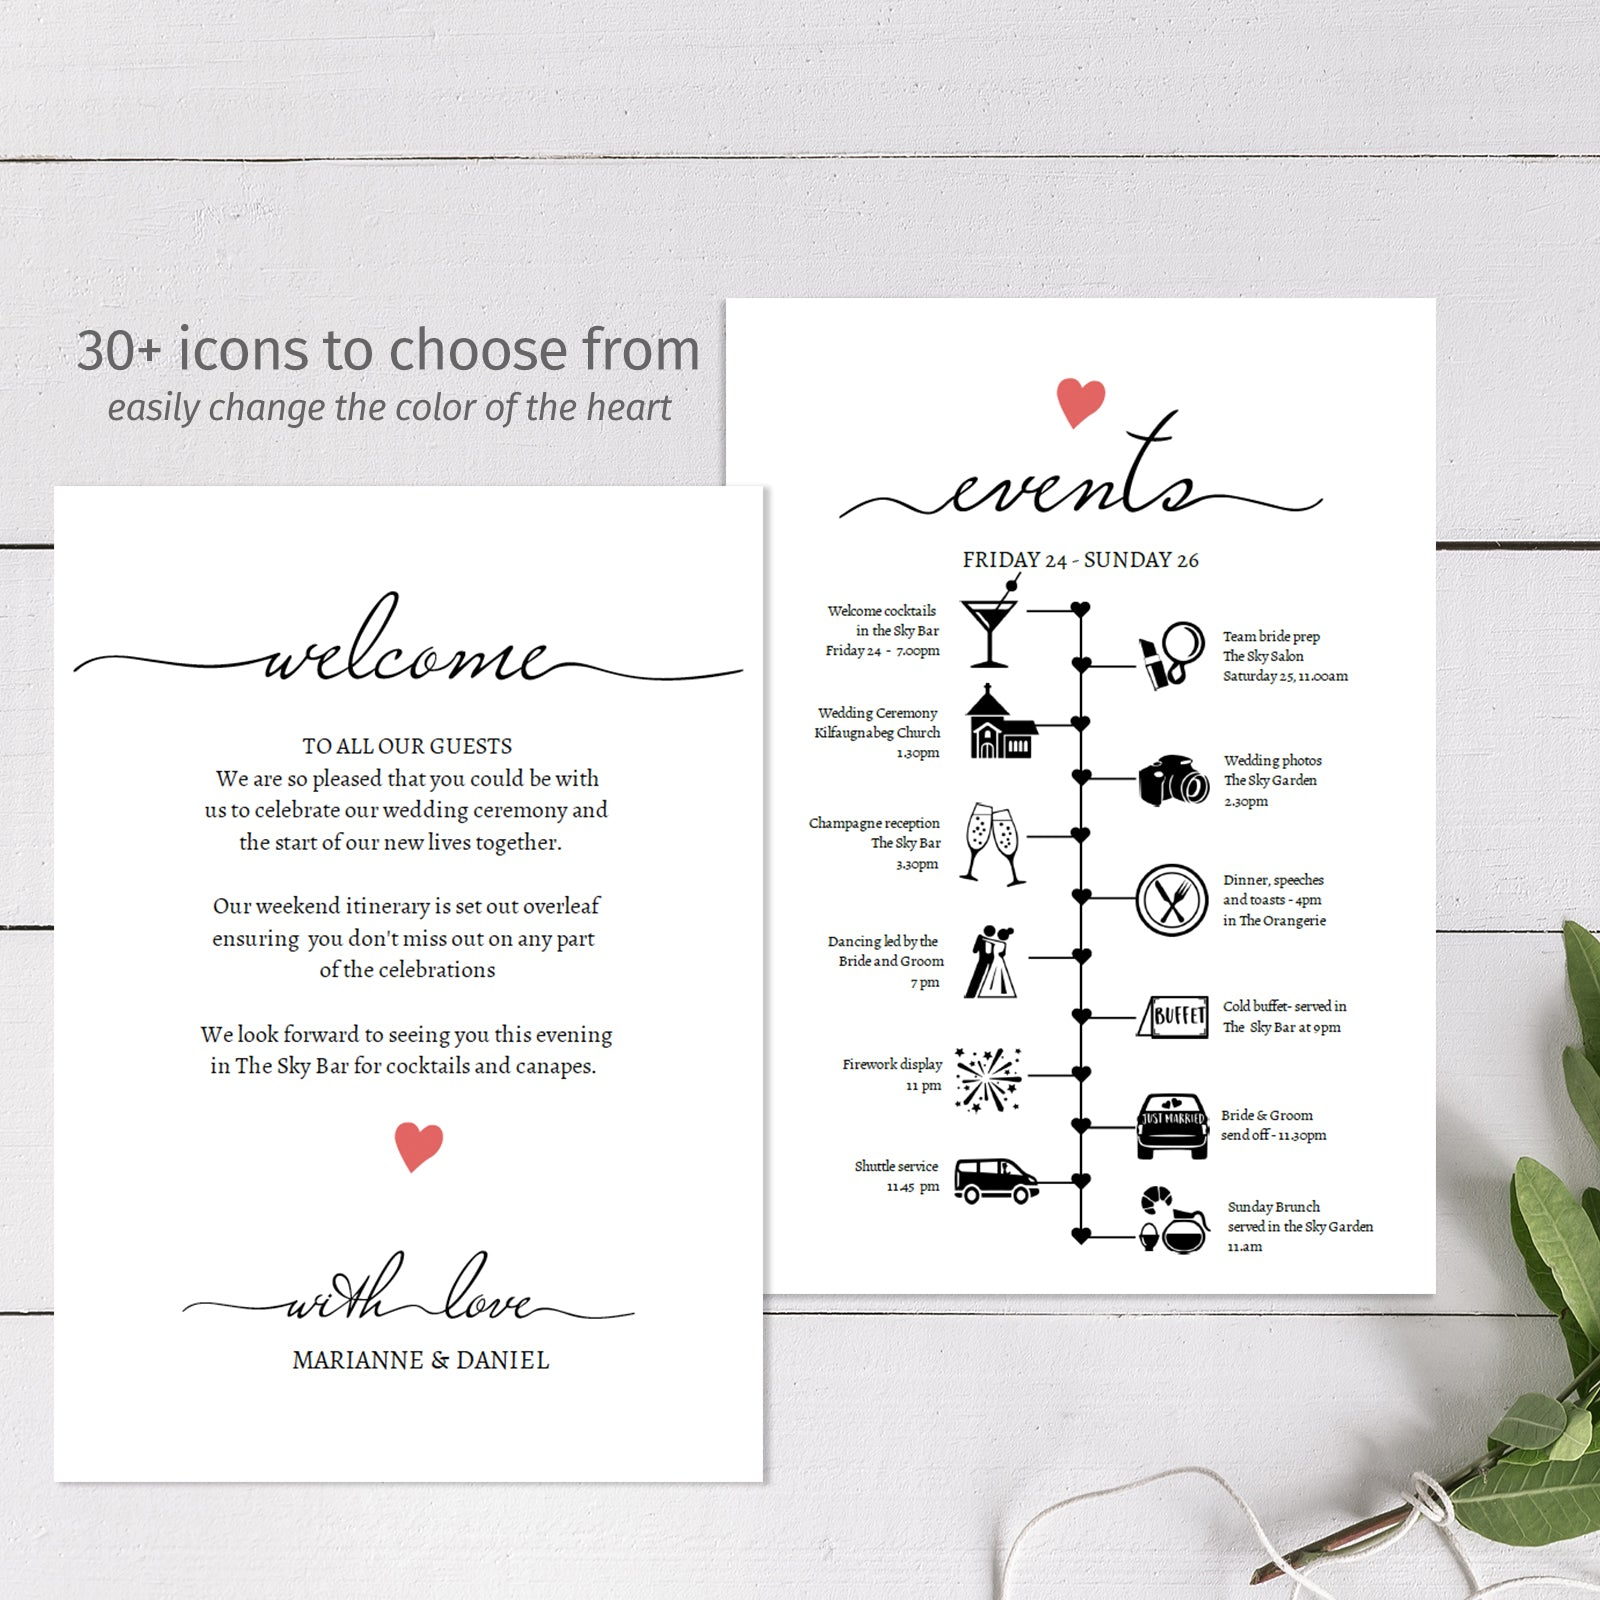 Wedding timeline template to download, edit and print